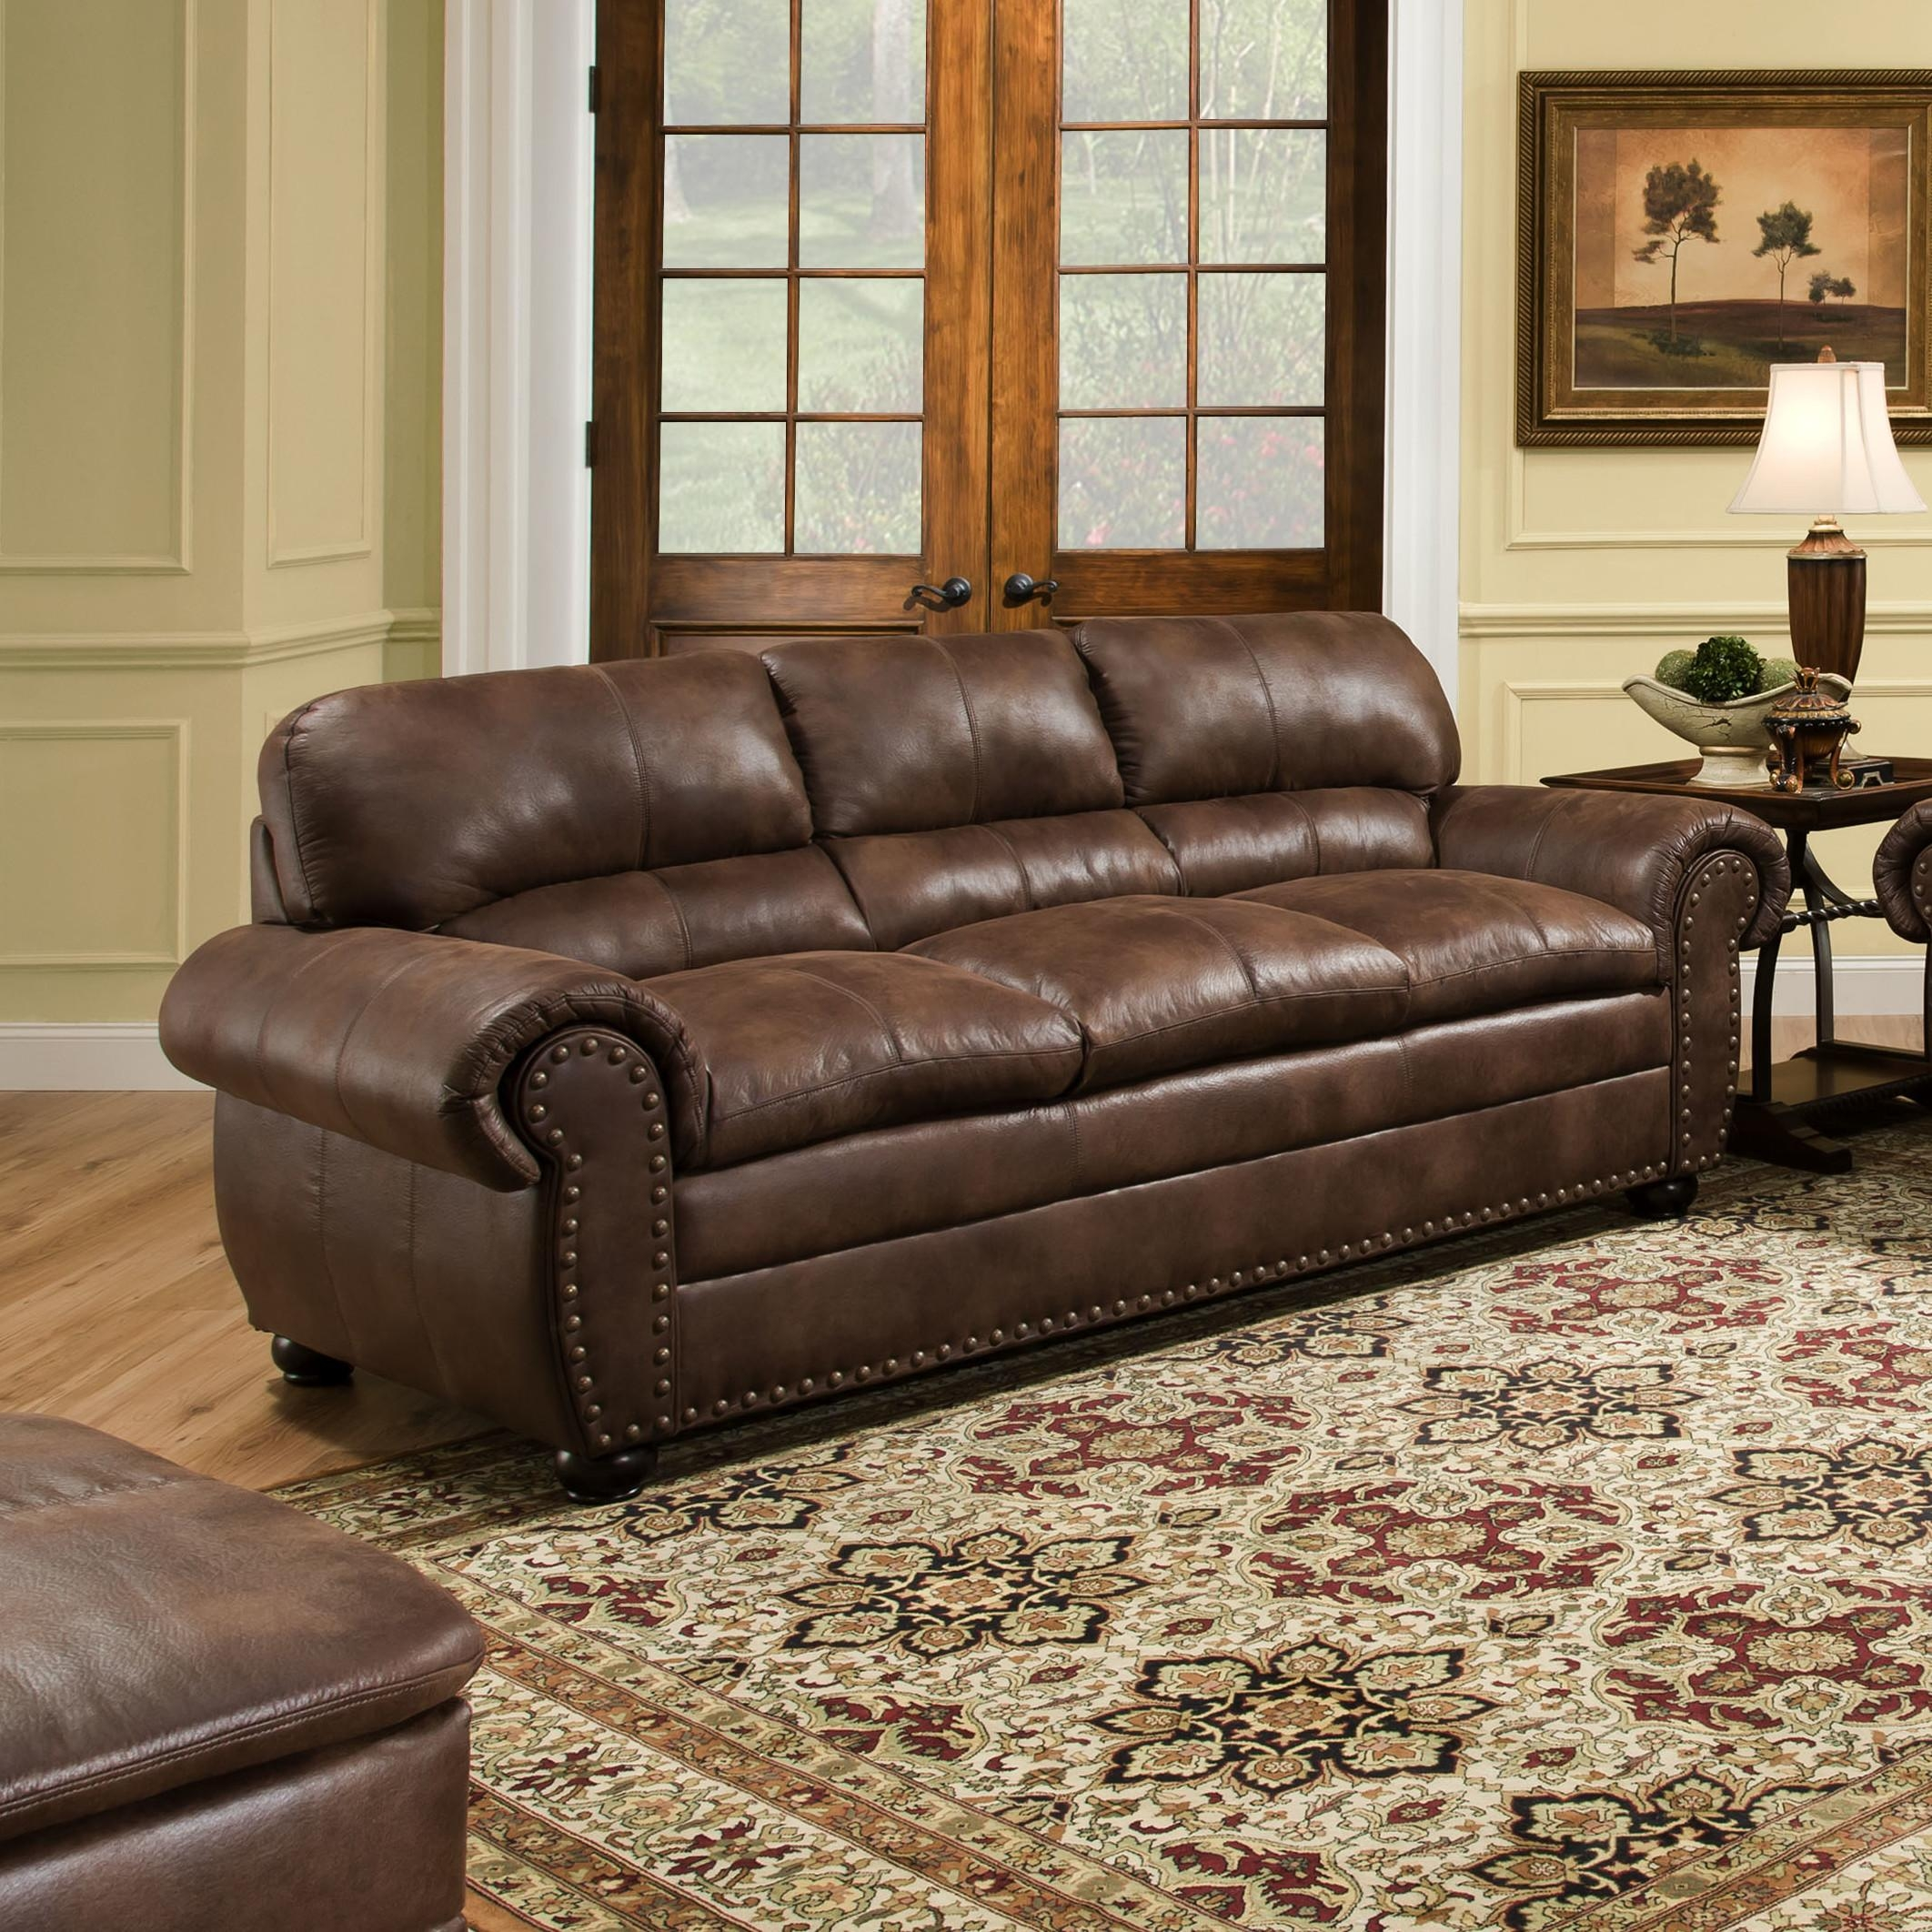 Simmons Sofas Reviews | Tehranmix Decoration Throughout Simmons Sofas (Image 9 of 20)